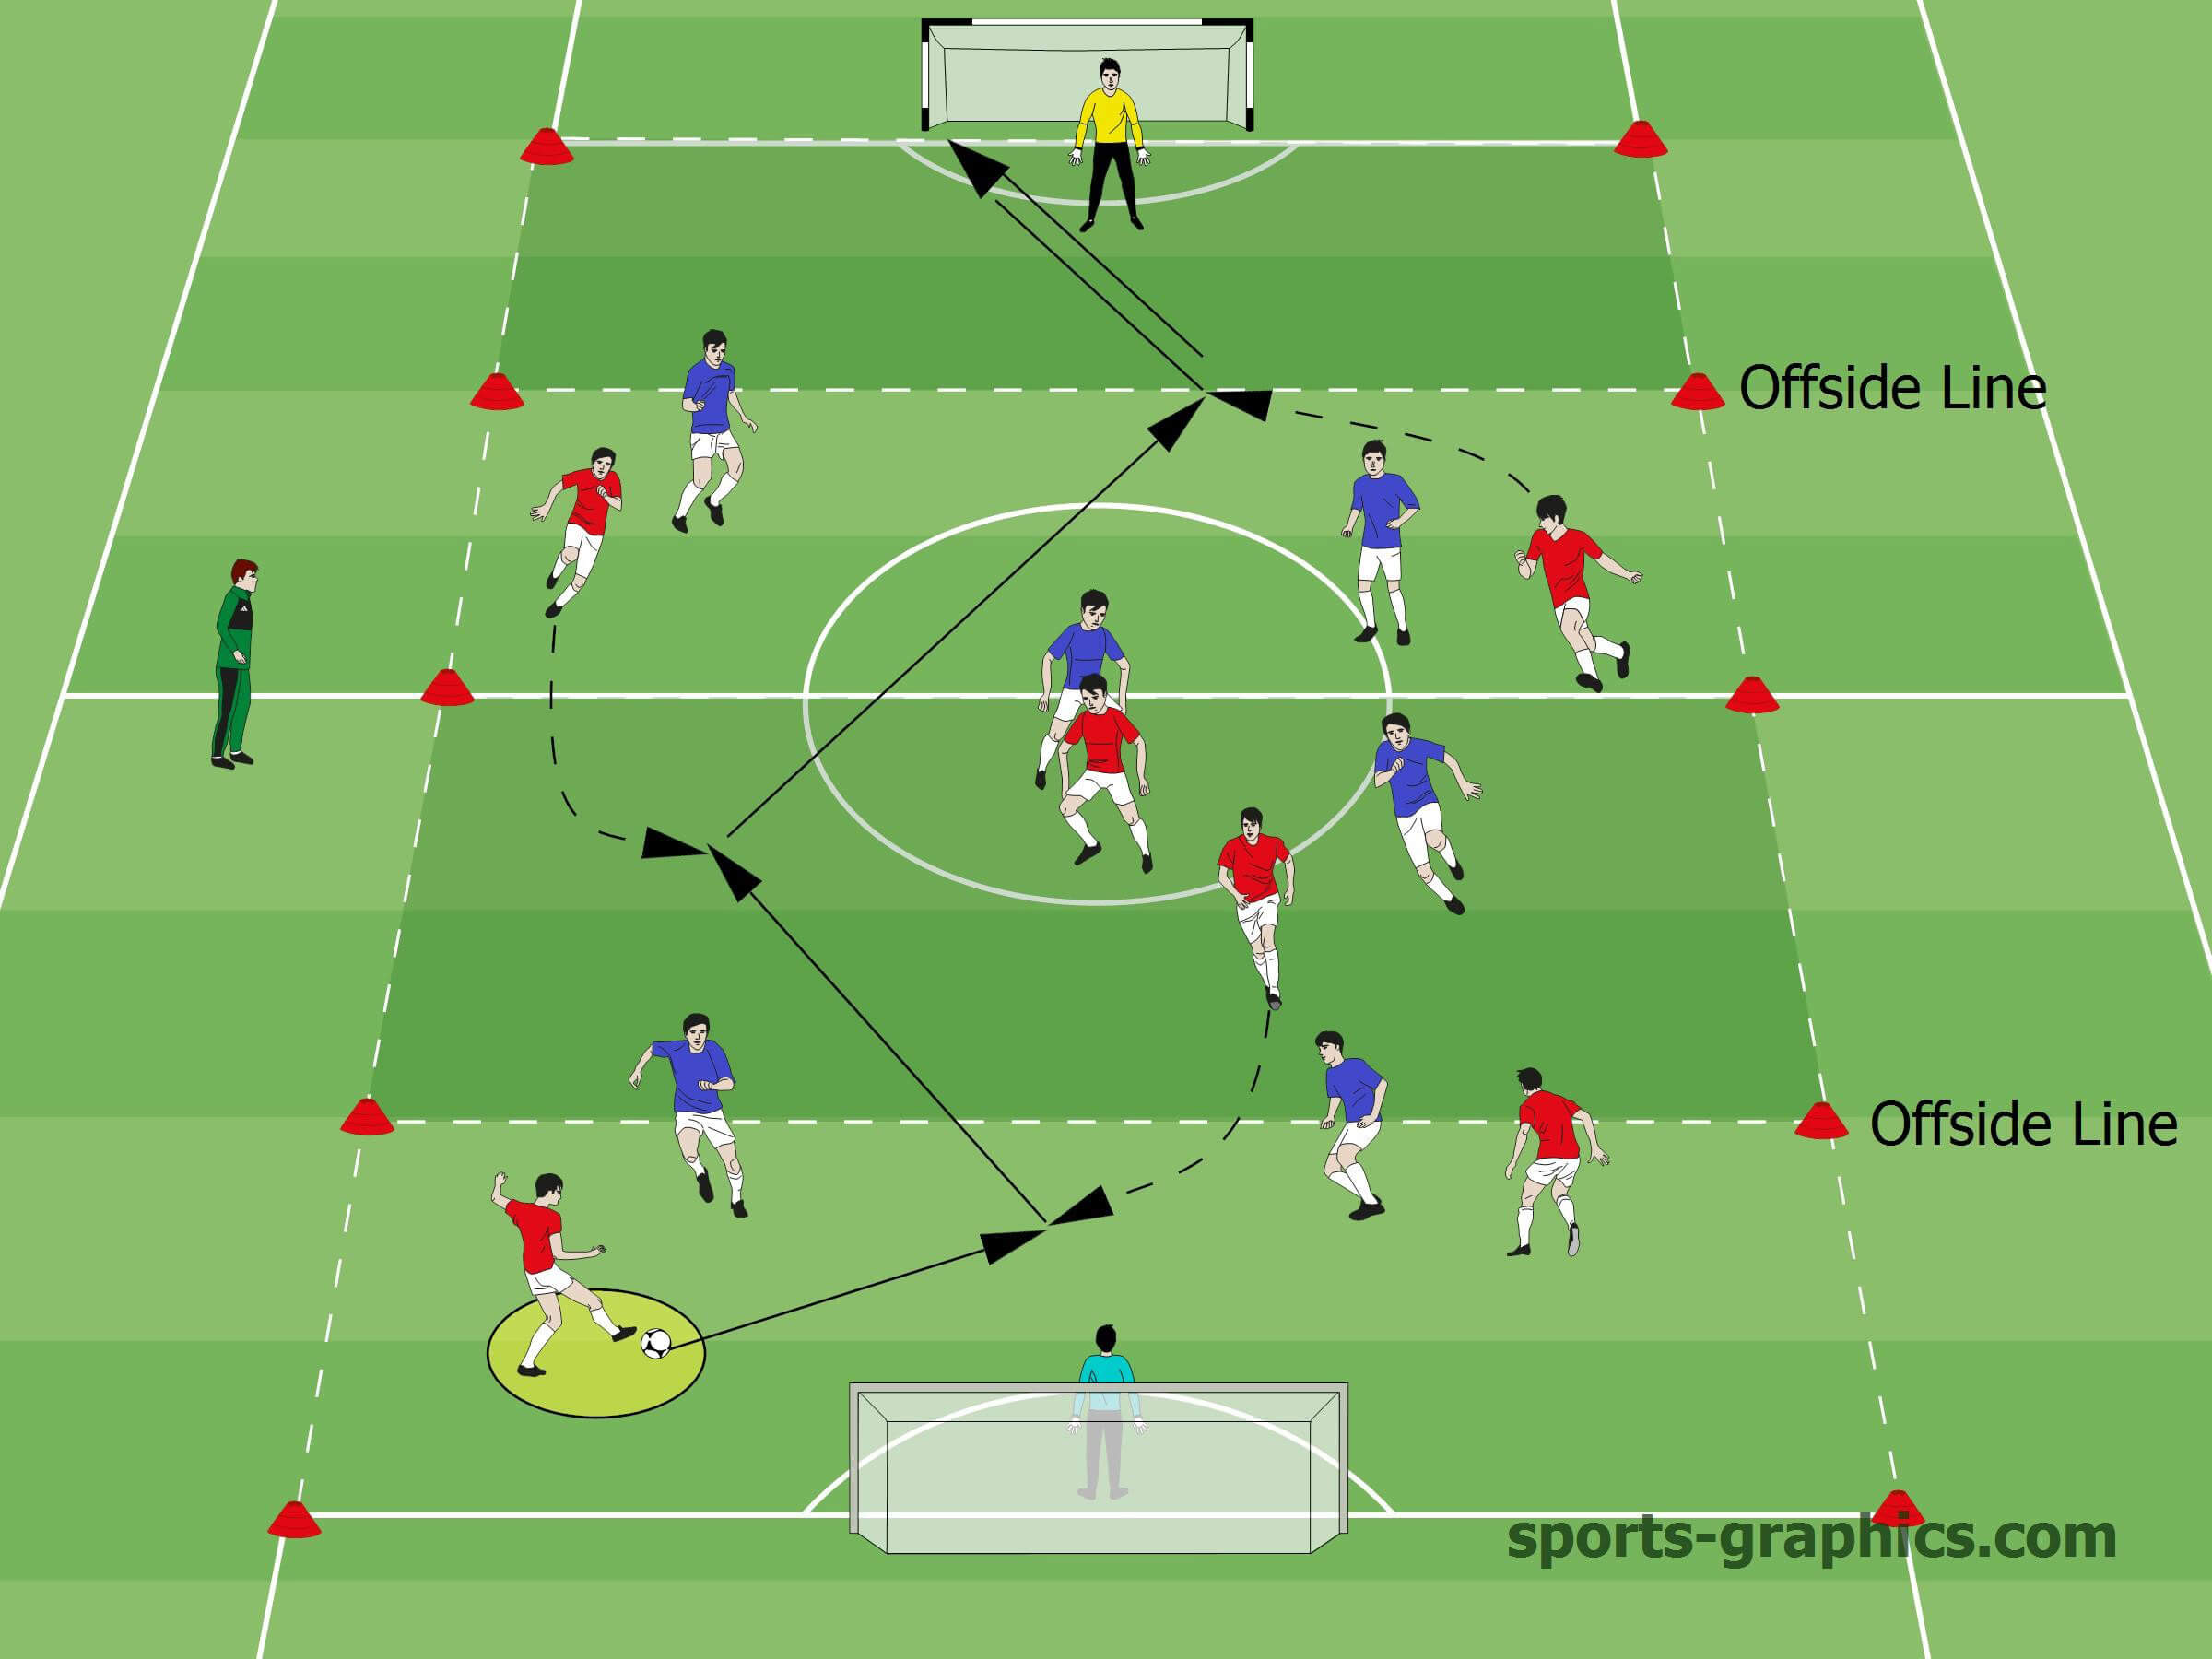 A 6 v 6 Vertical Game in Four Zones